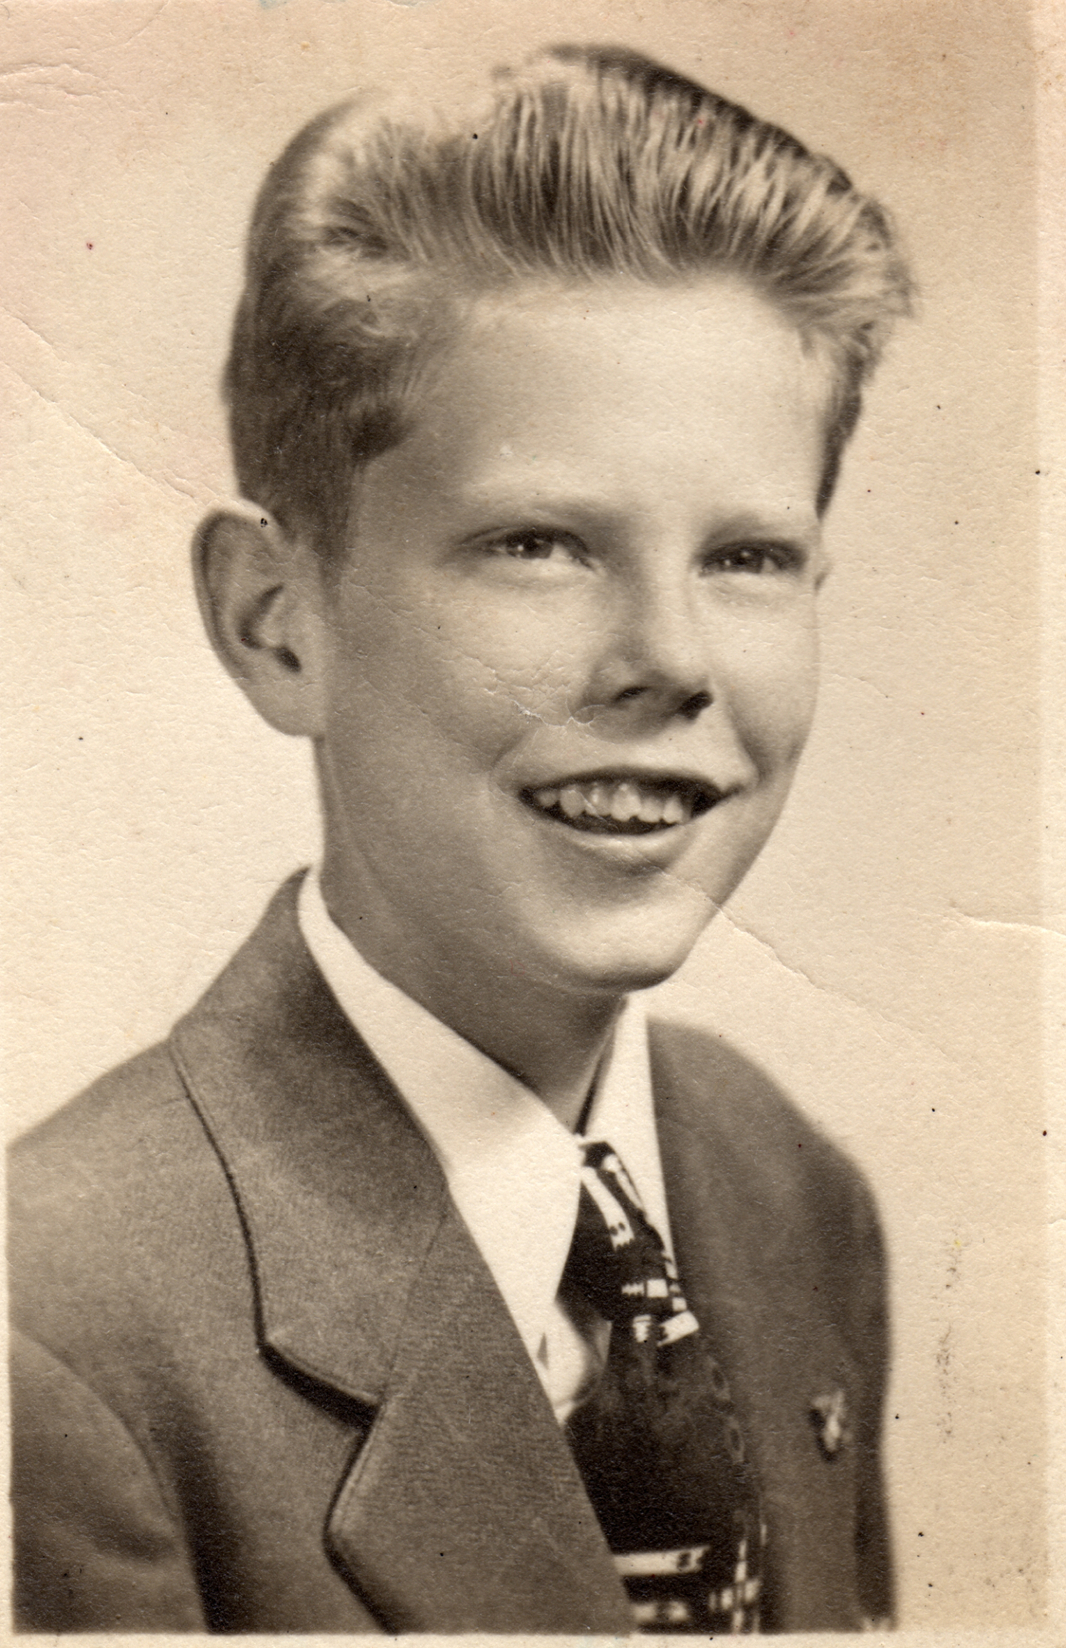 BobBro3: M. David Lawler at 12